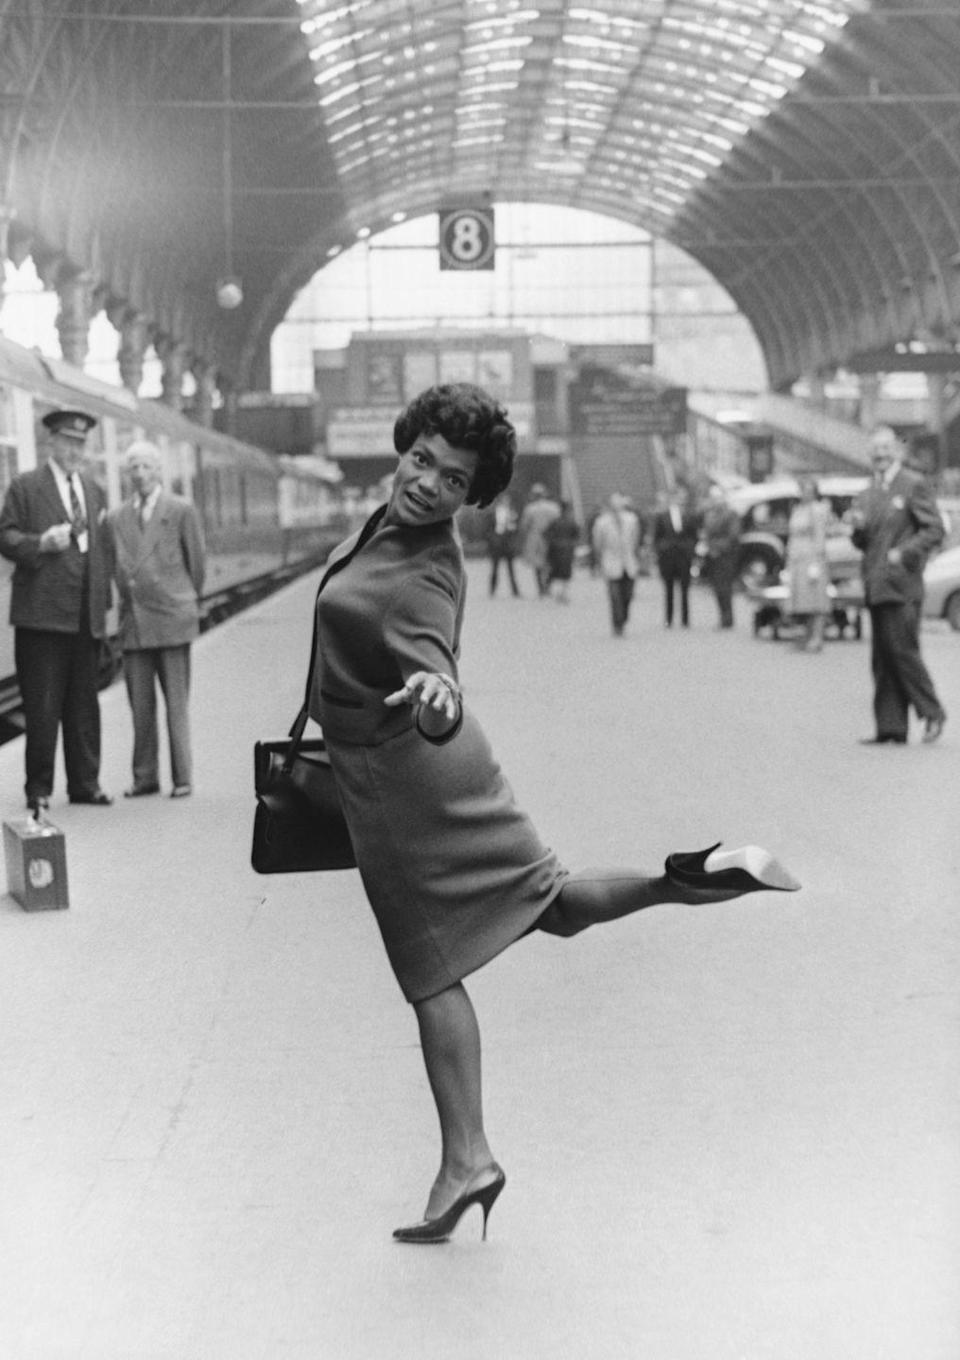 <p>Kitt arrives at Paddington Station in London at the start of a two-month cabaret gig with her new husband of three months, Bill McDonald. Kitt would live in London for several years—raising her daughter there off and on—and considered it a second home. </p>